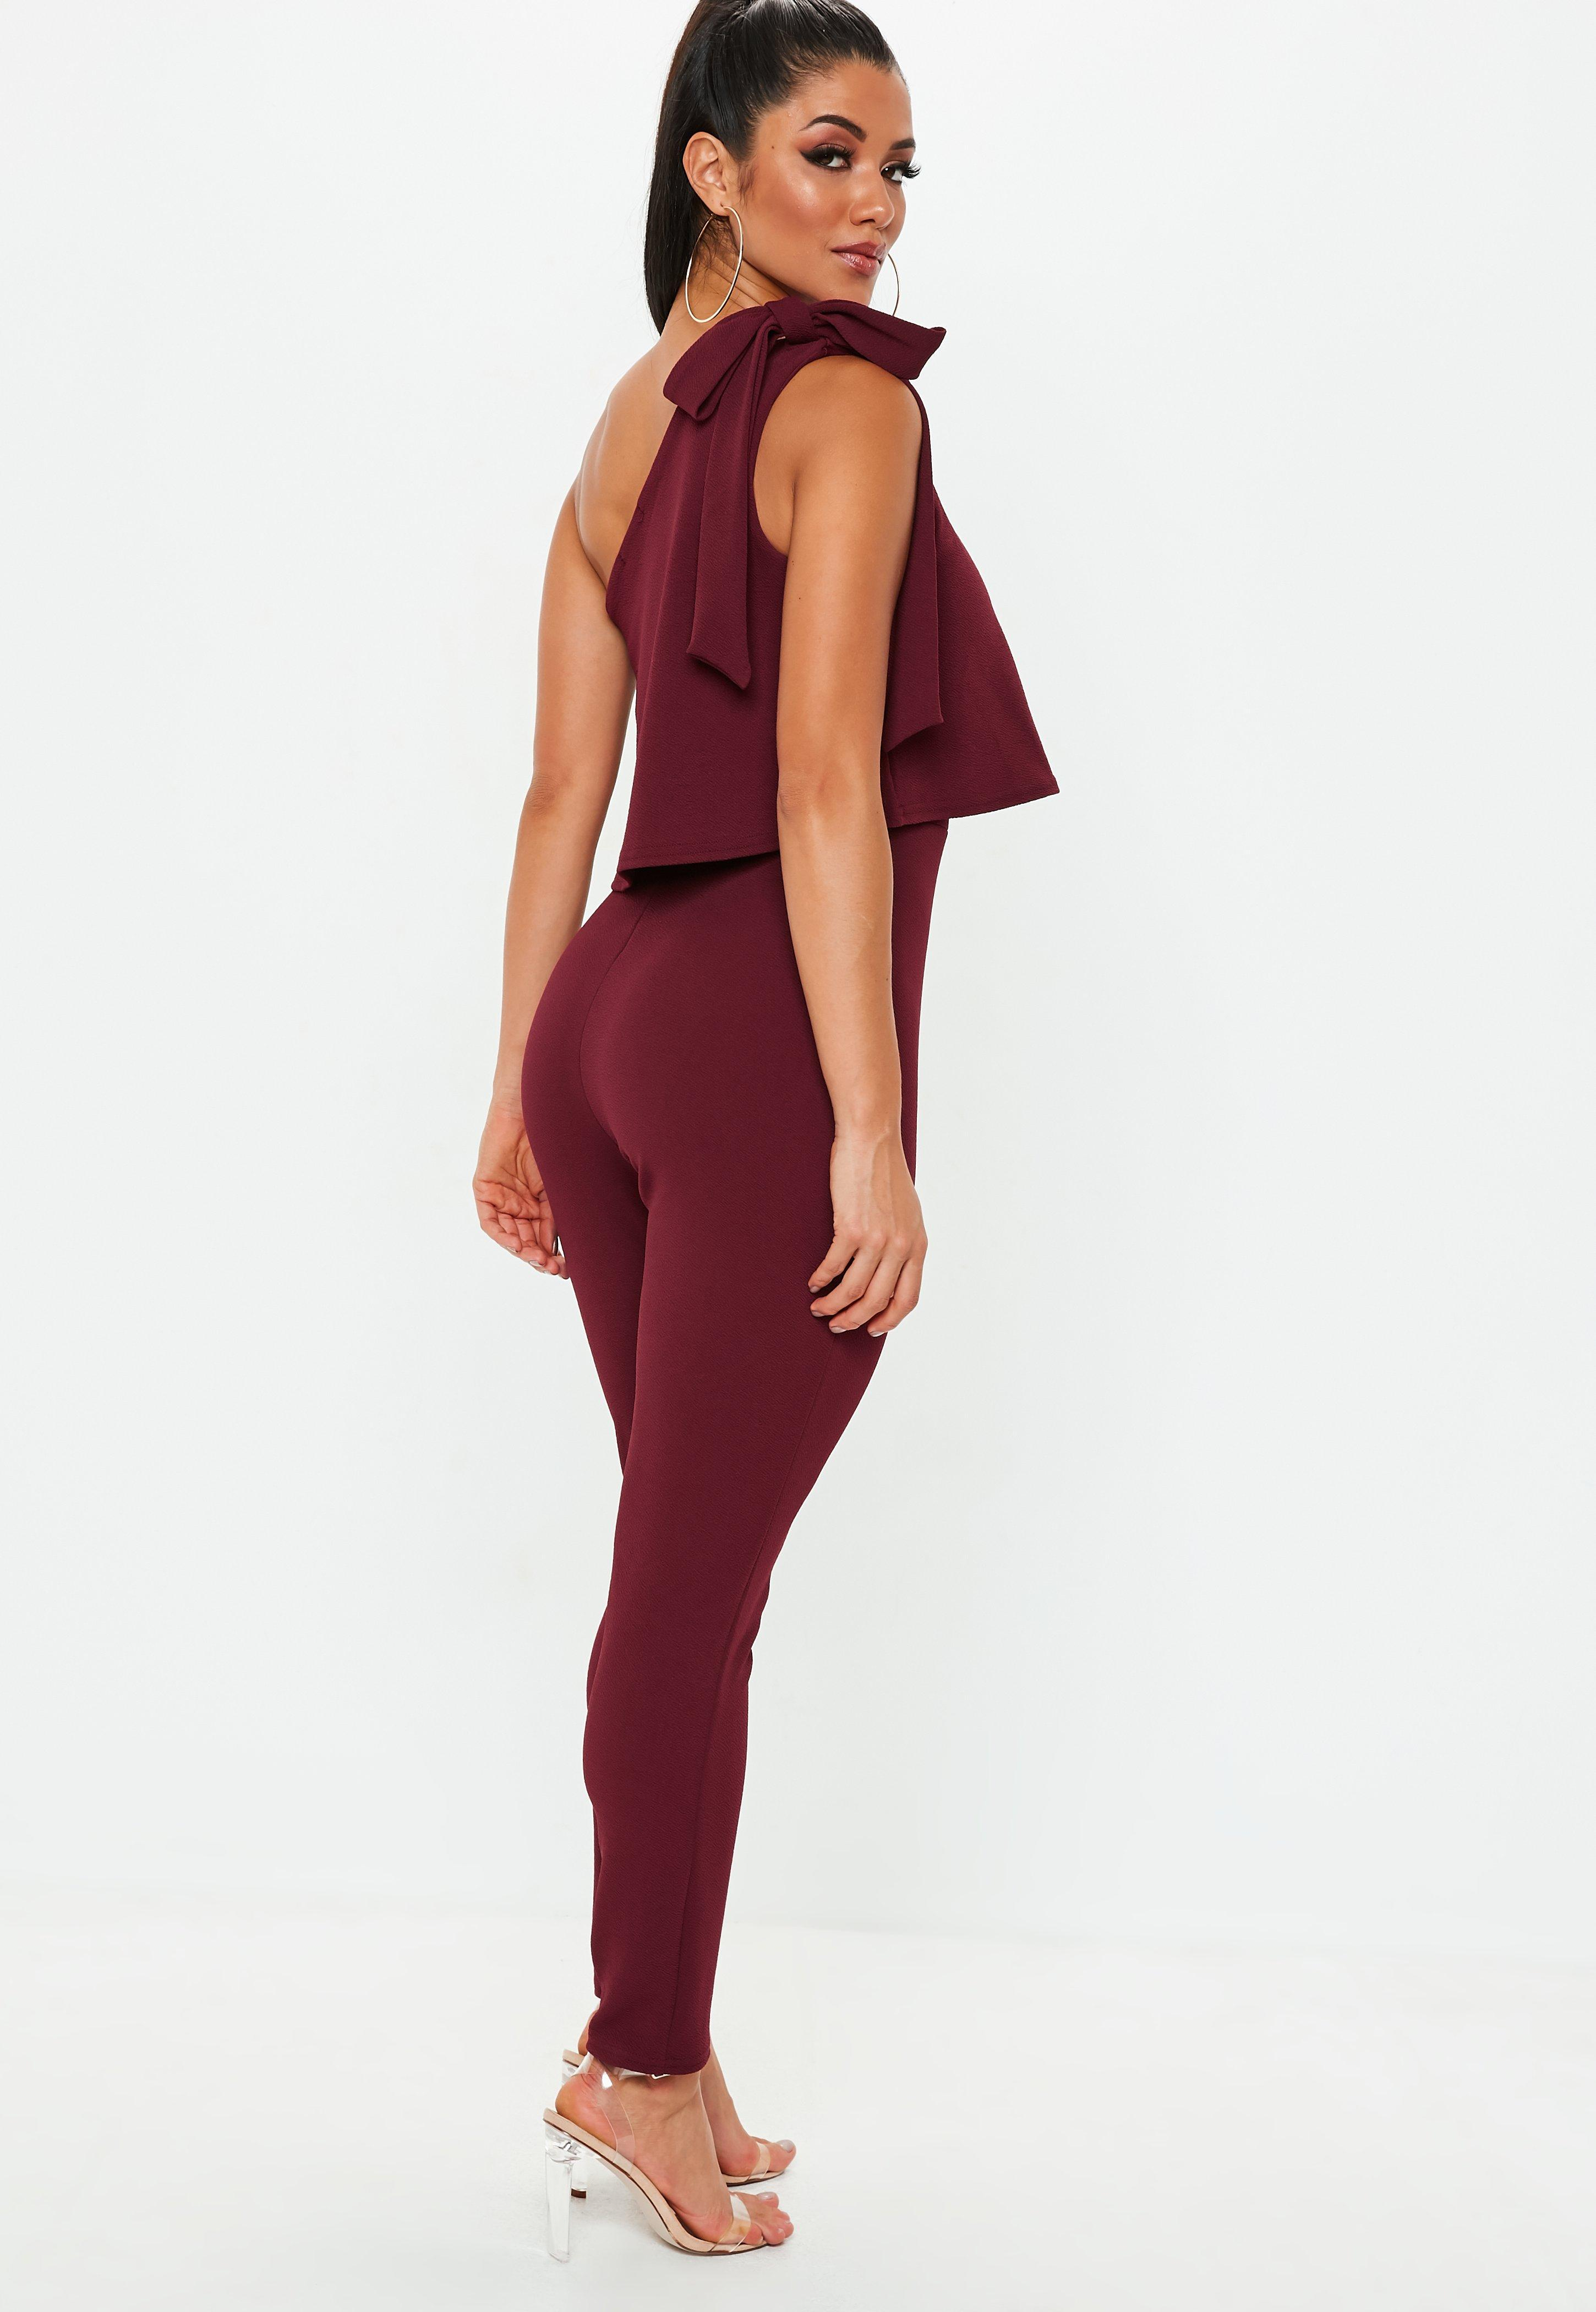 5a0f240c222 Lyst - Missguided Wine One Shoulder Bow Jumpsuit in Red - Save ...